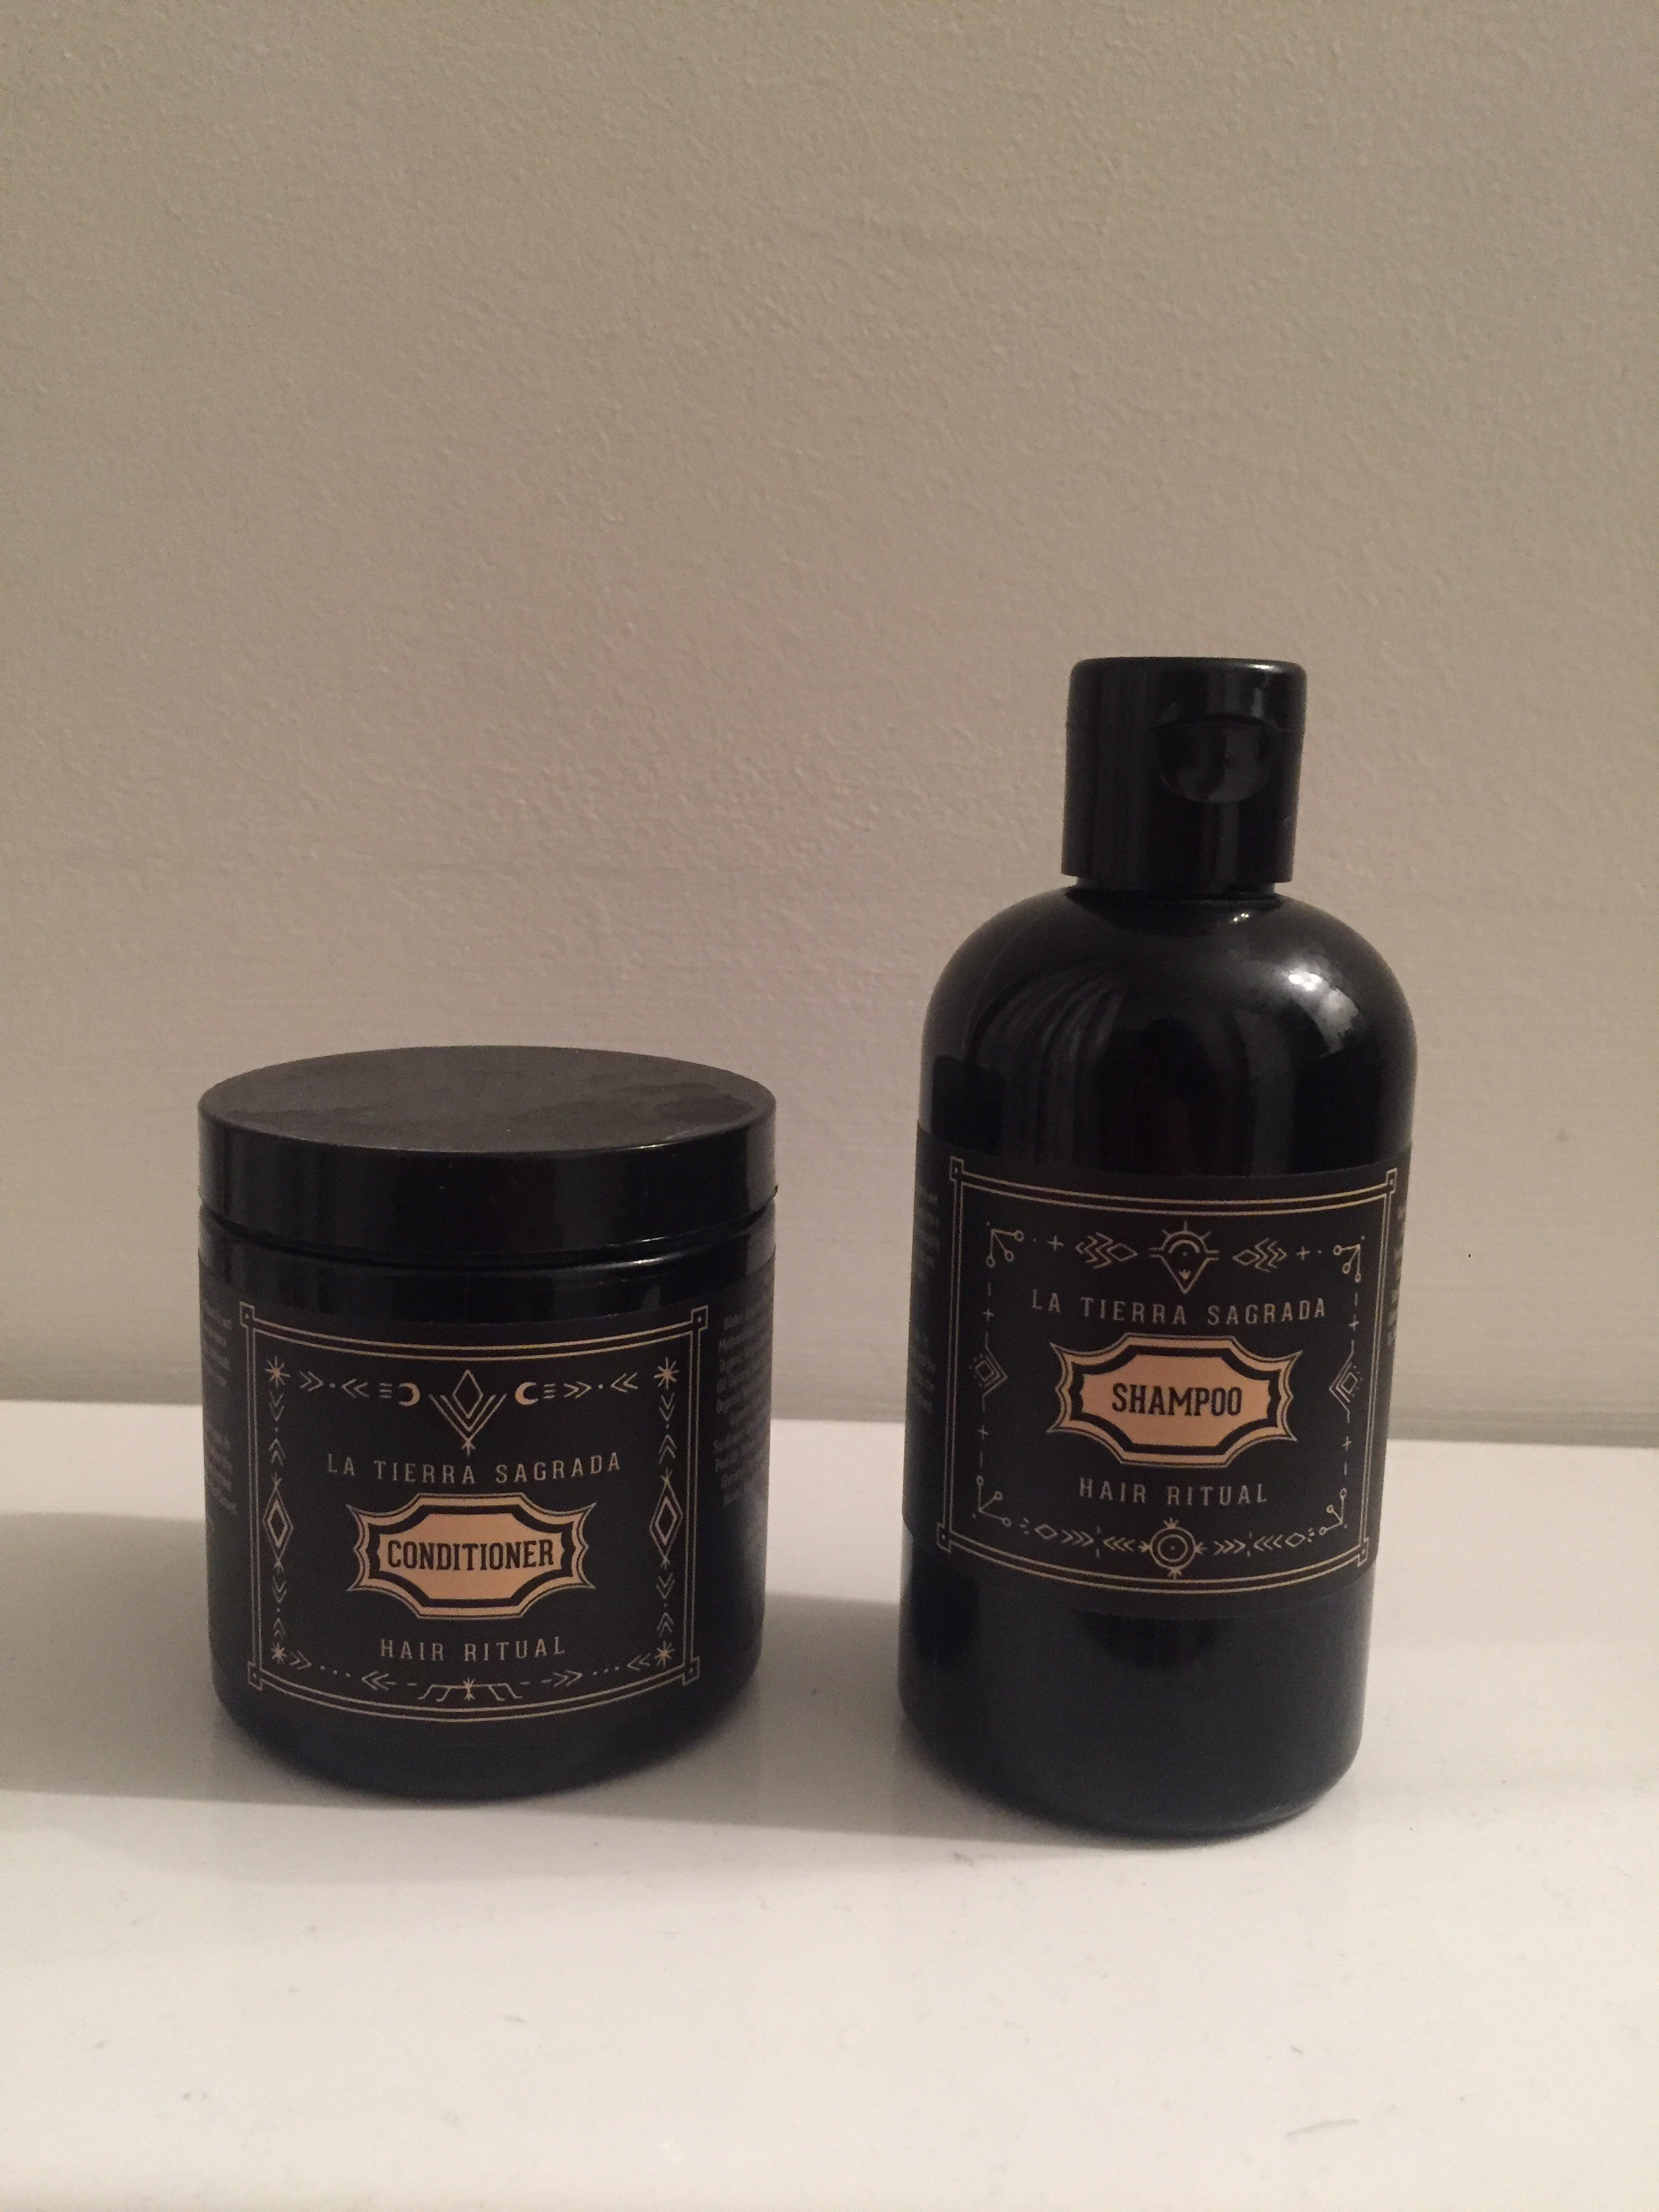 La Tierra sagrada shampoo and conditioner - used 1x